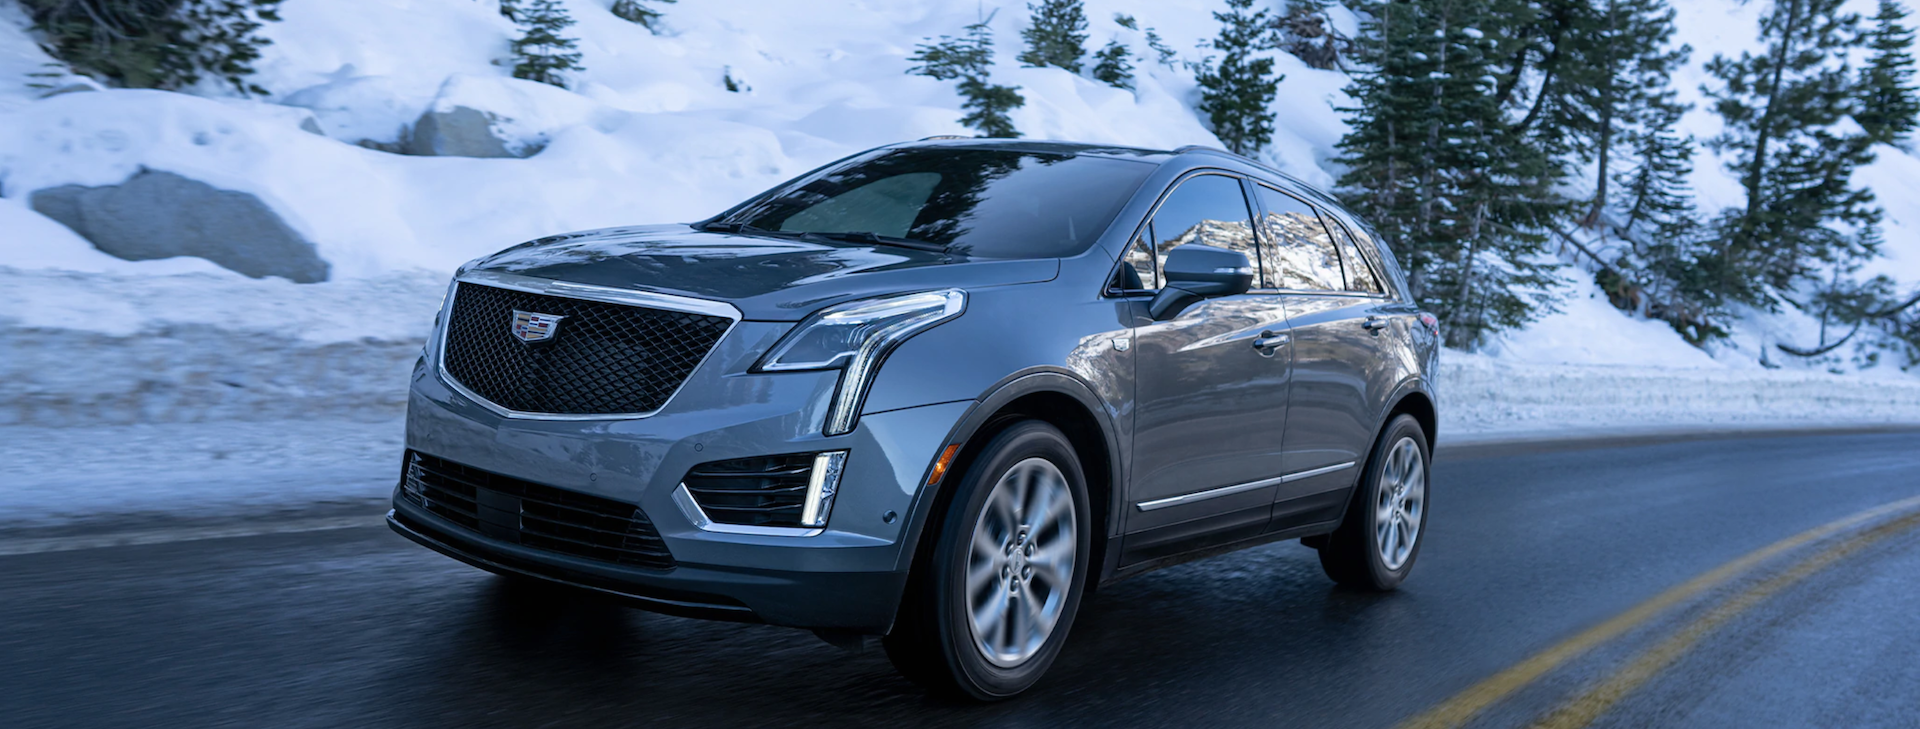 Picture of the New 2021 Cadillac XT5